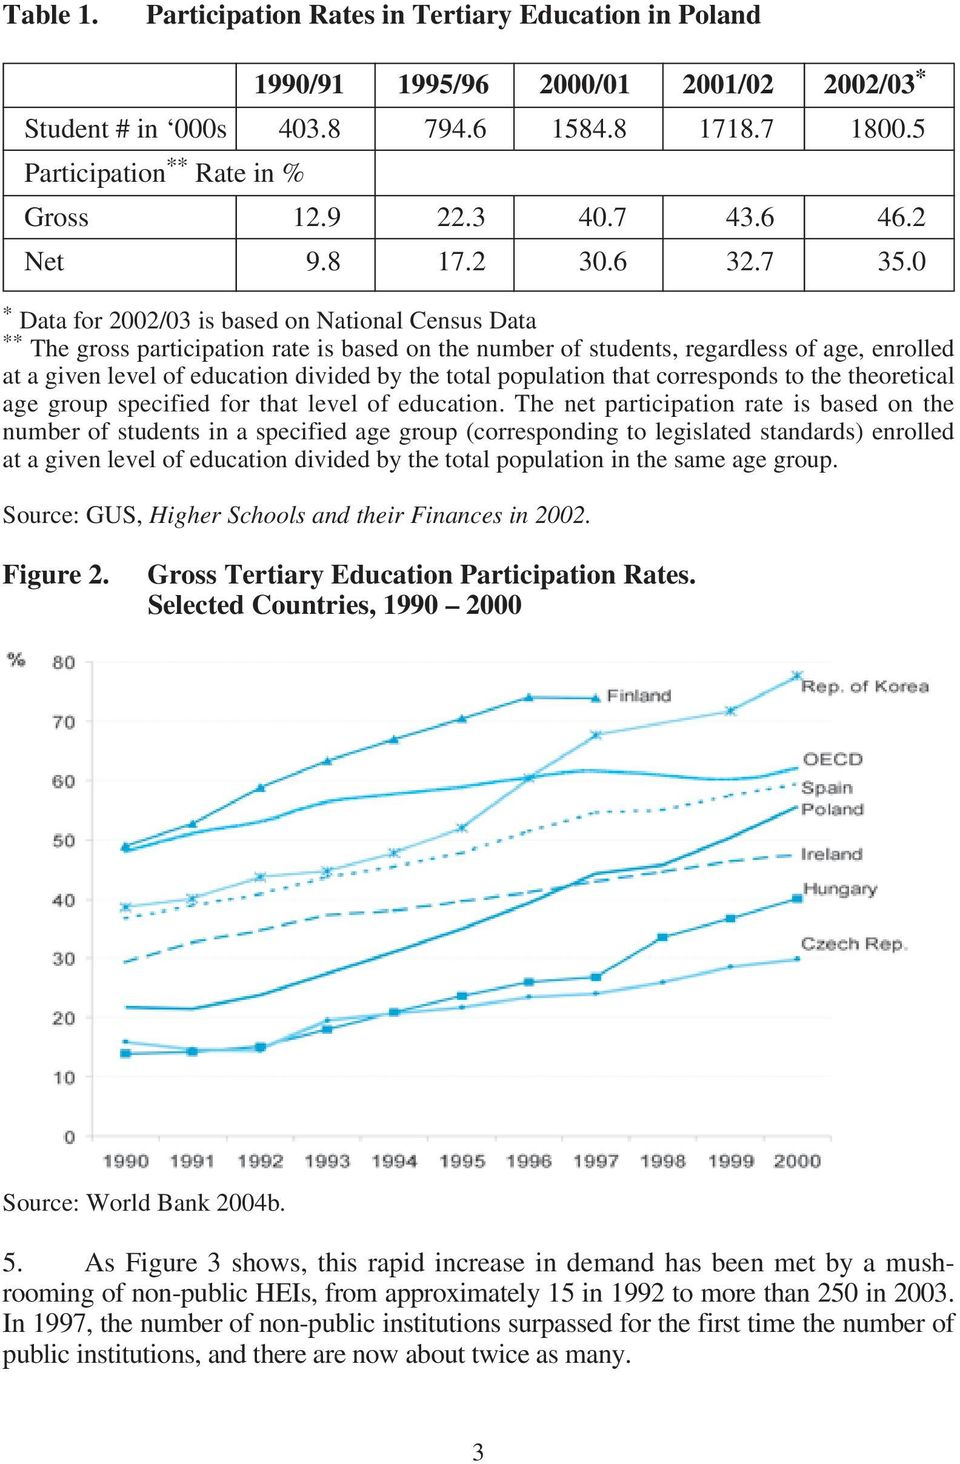 0 * Data for 2002/03 is based on National Census Data ** The gross participation rate is based on the number of students, regardless of age, enrolled at a given level of education divided by the